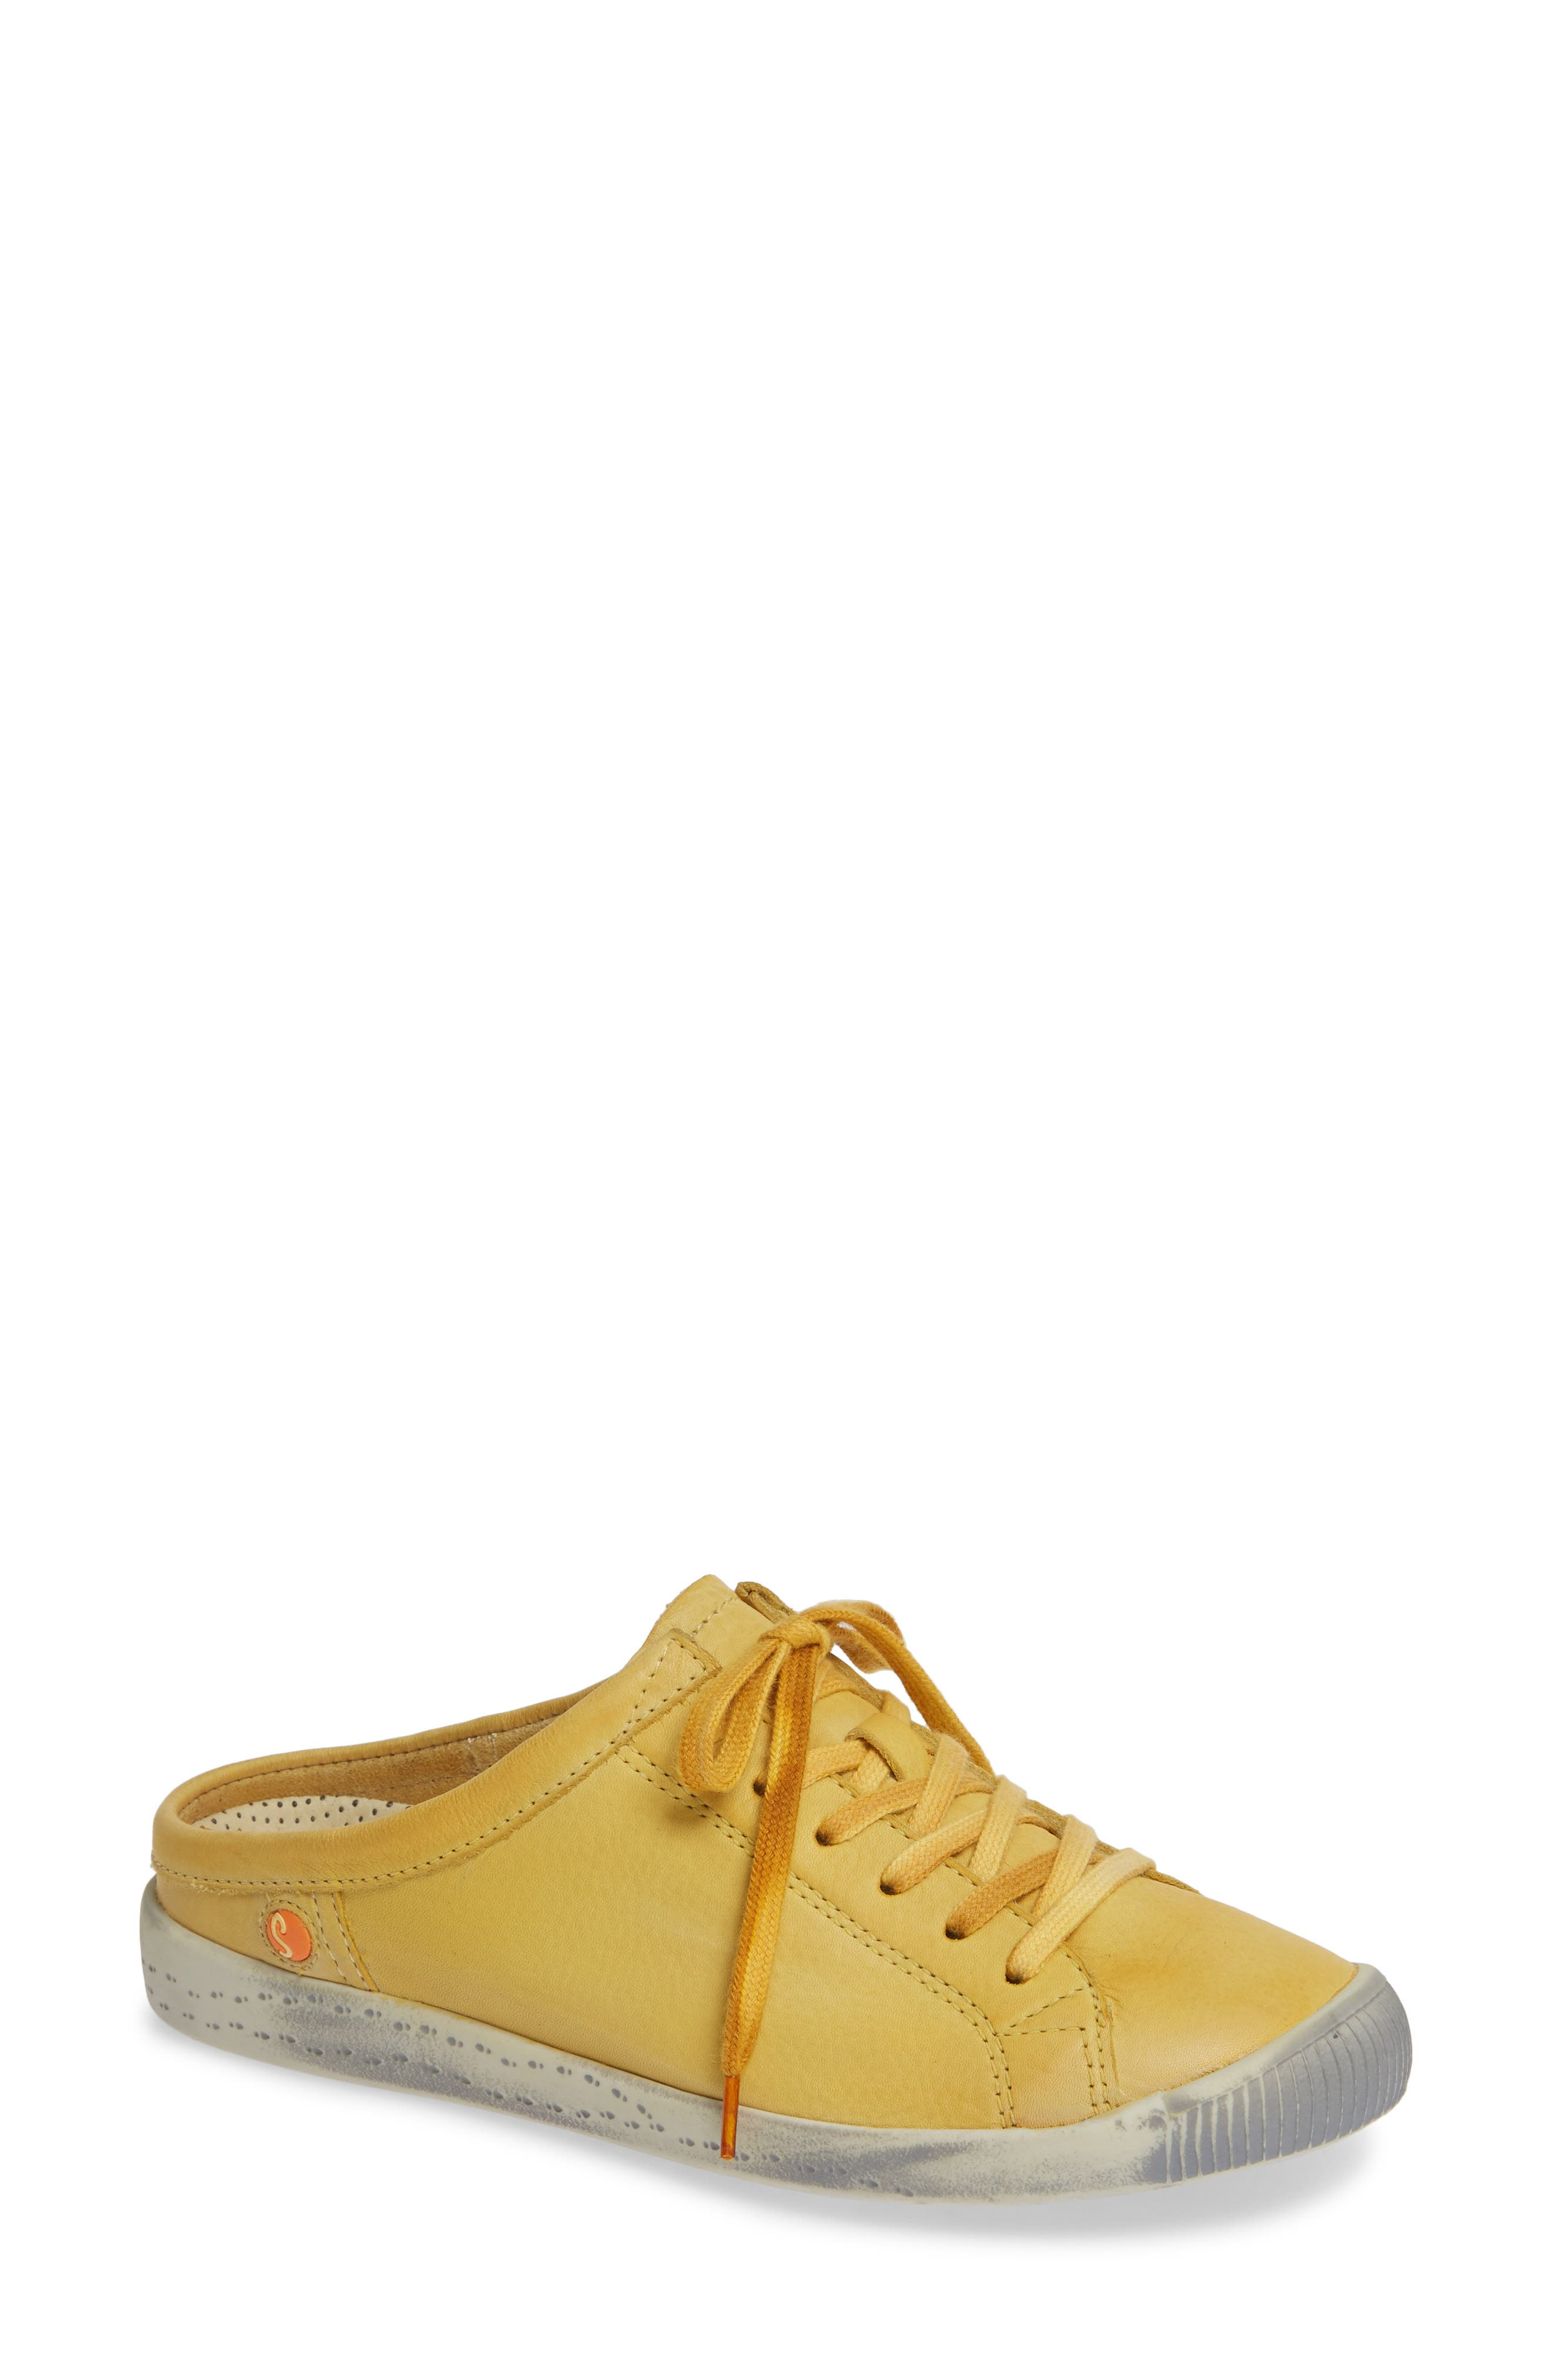 Softinos By Fly London Ije Sneaker Mule - Yellow